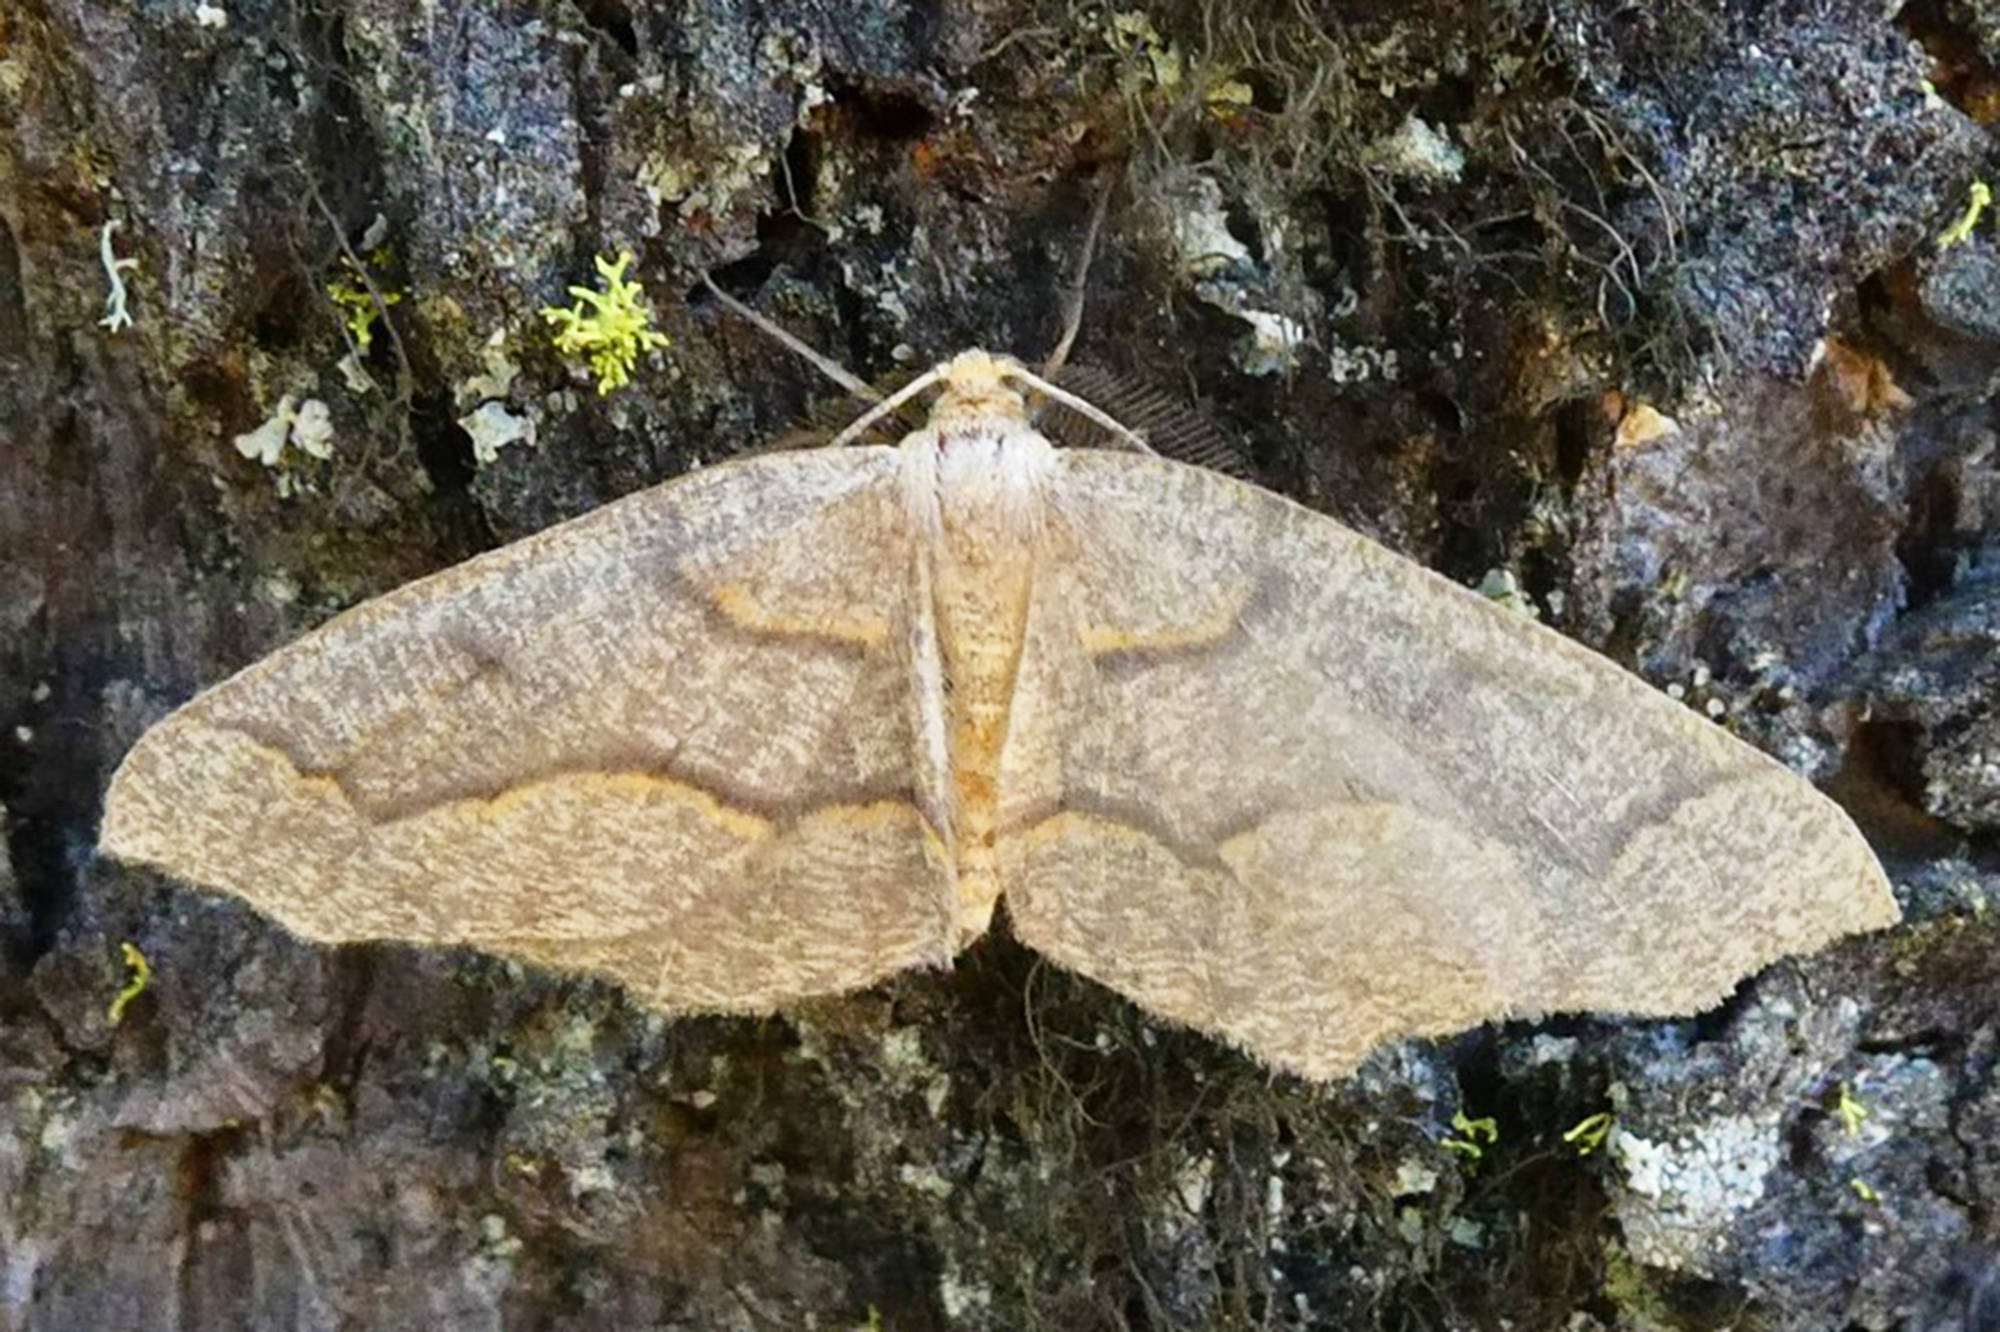 """This year's Western hemlock """"looper"""" moth outbreak has been seen in the Lower Mainland and the Interior, including communities throughout the Columbia Shuswap Regional District. (Lorraine Maclauchlan photo)"""